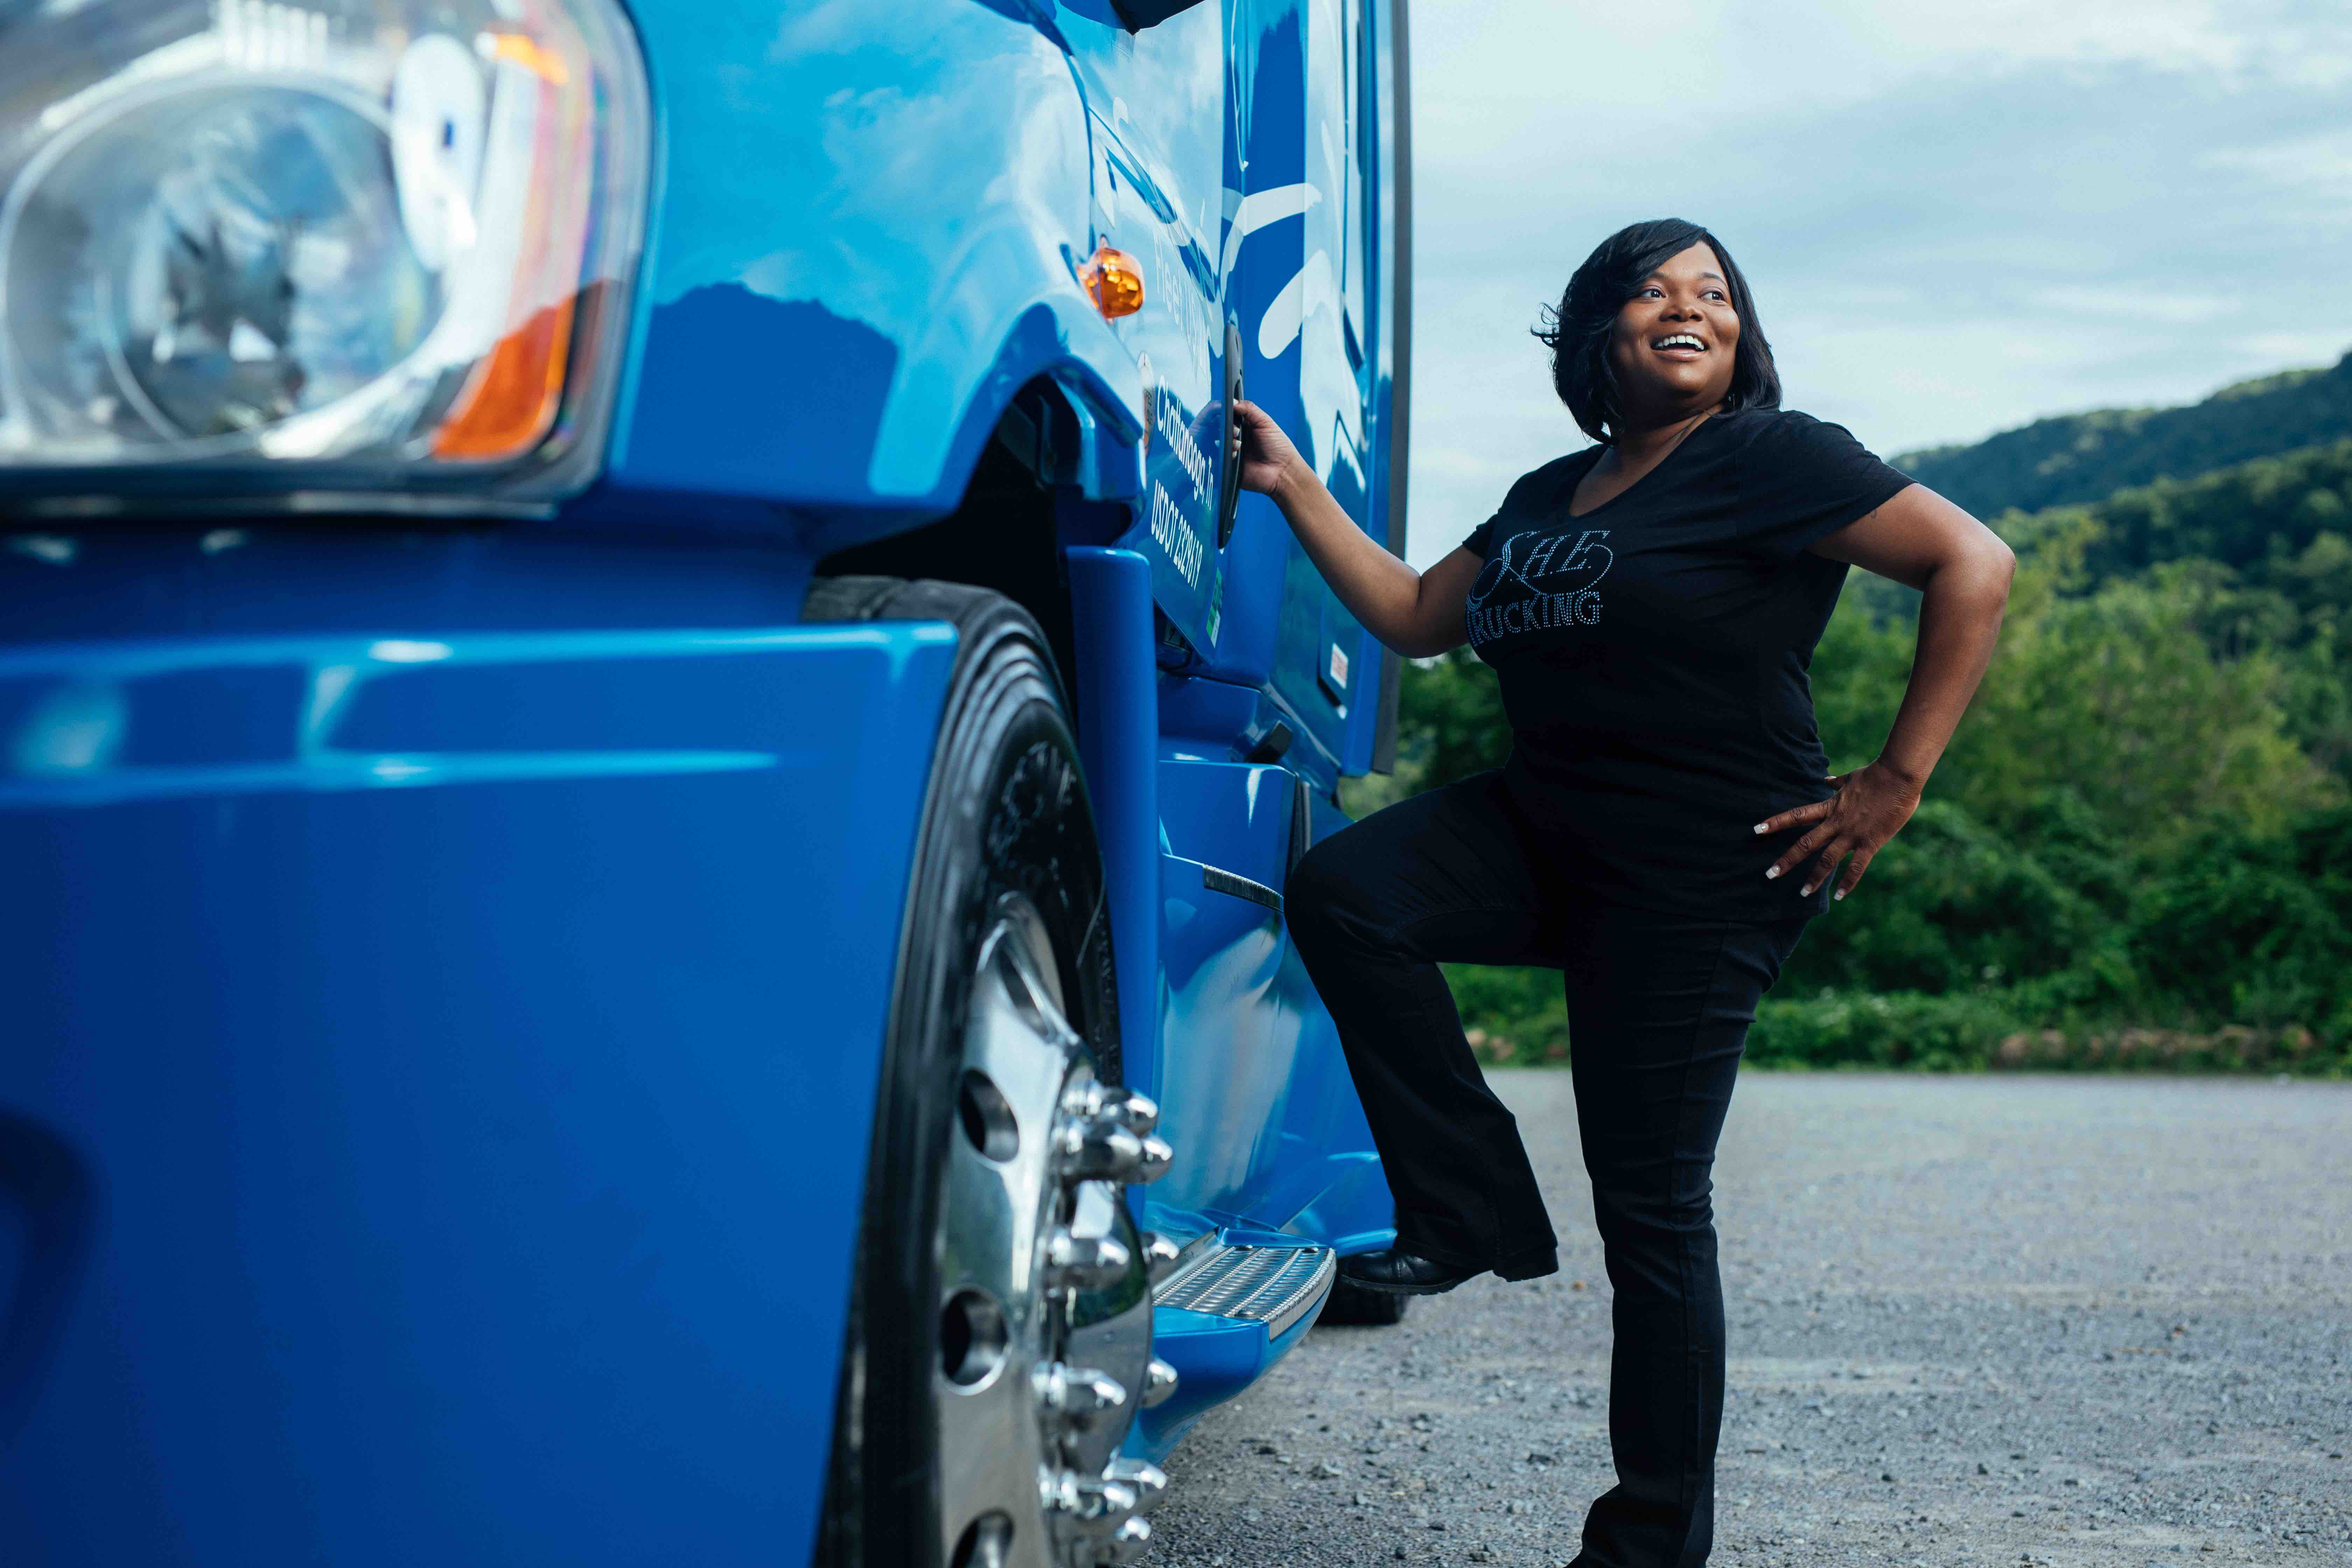 Here's How This Female Truck Driver Is Providing A Platform For Women In The Trucking Industry